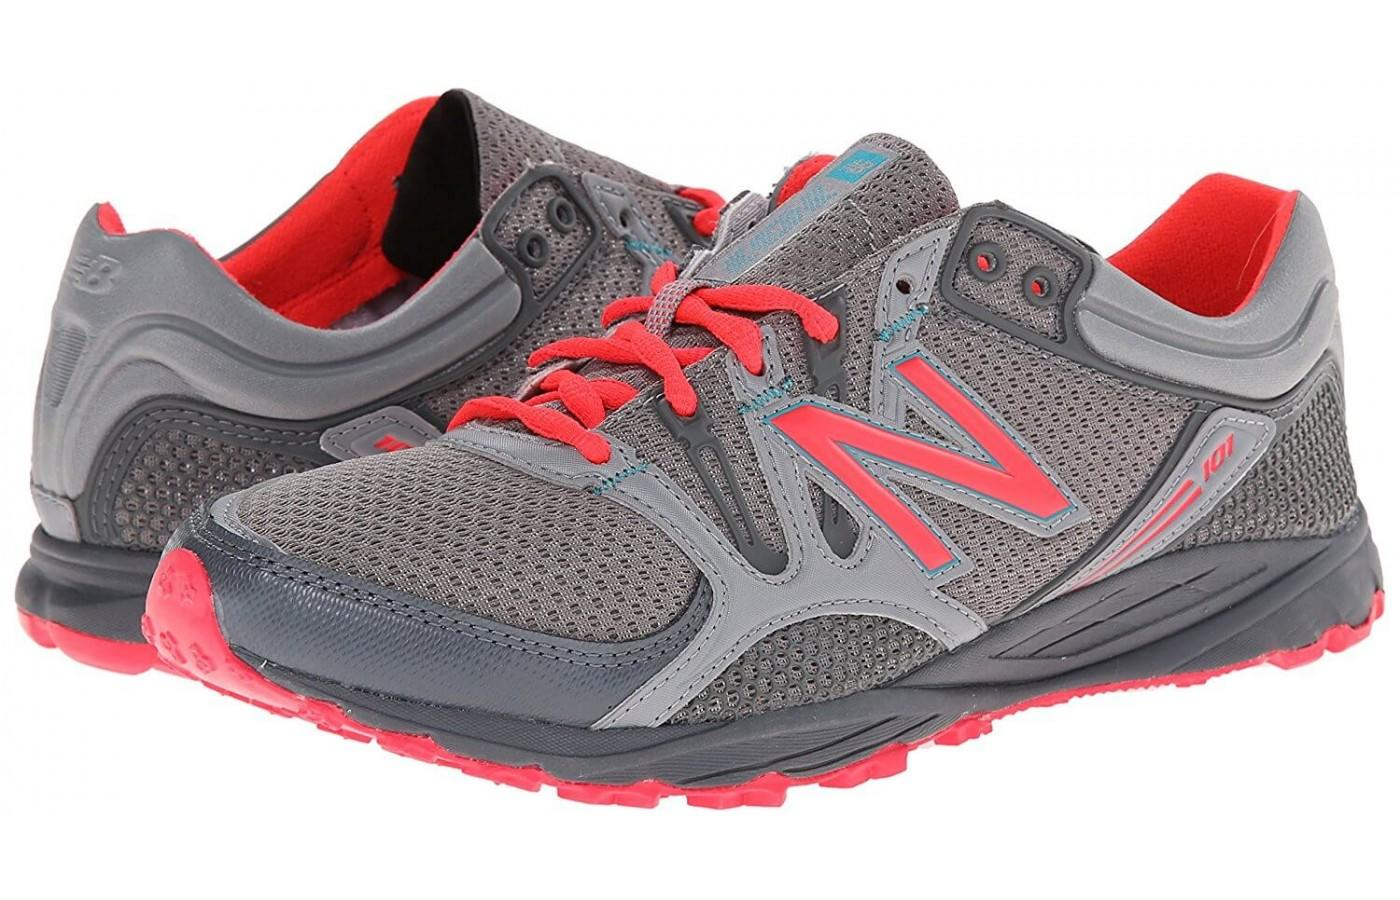 The New Balance 101 is listed at a fair price